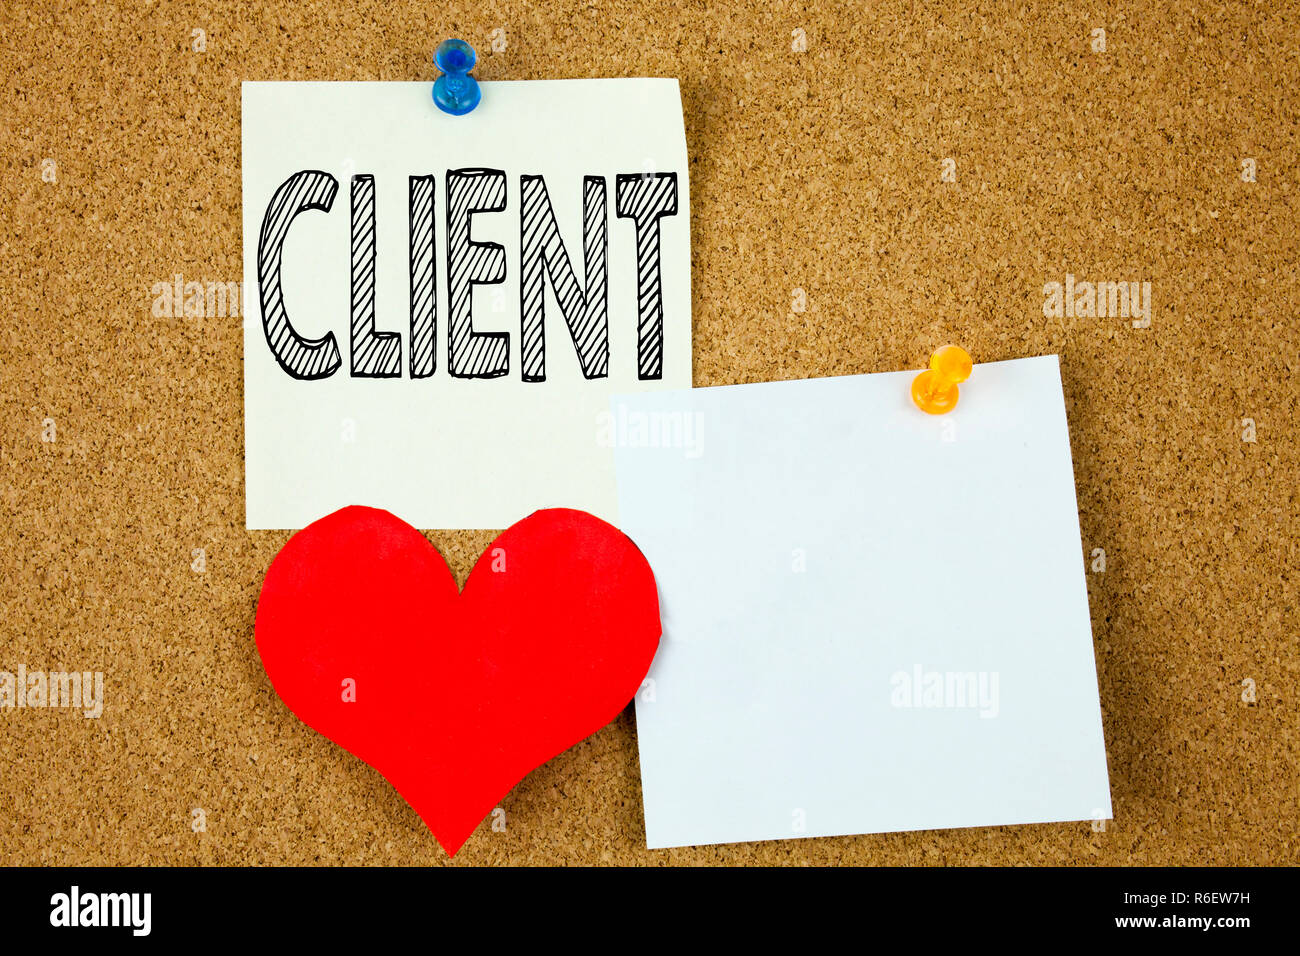 Conceptual hand writing text caption inspiration showing Client concept for Client Customer Business and Love written on sticky note, reminder cork background with copy space - Stock Image